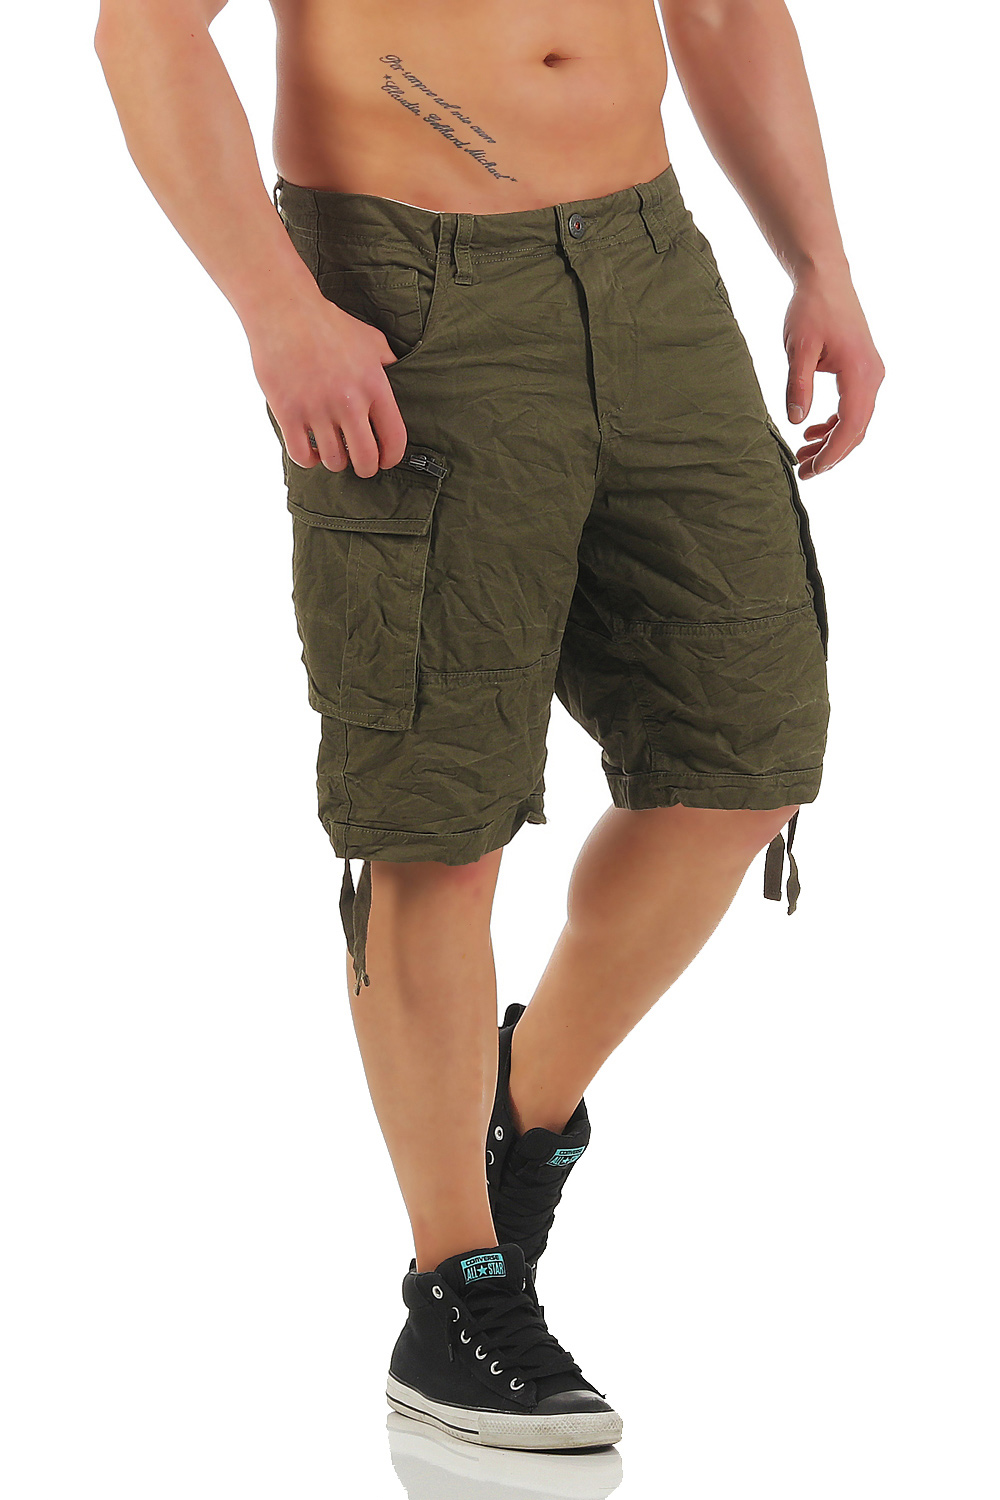 jack jones herren cargo shorts jjchop short bermuda hose. Black Bedroom Furniture Sets. Home Design Ideas